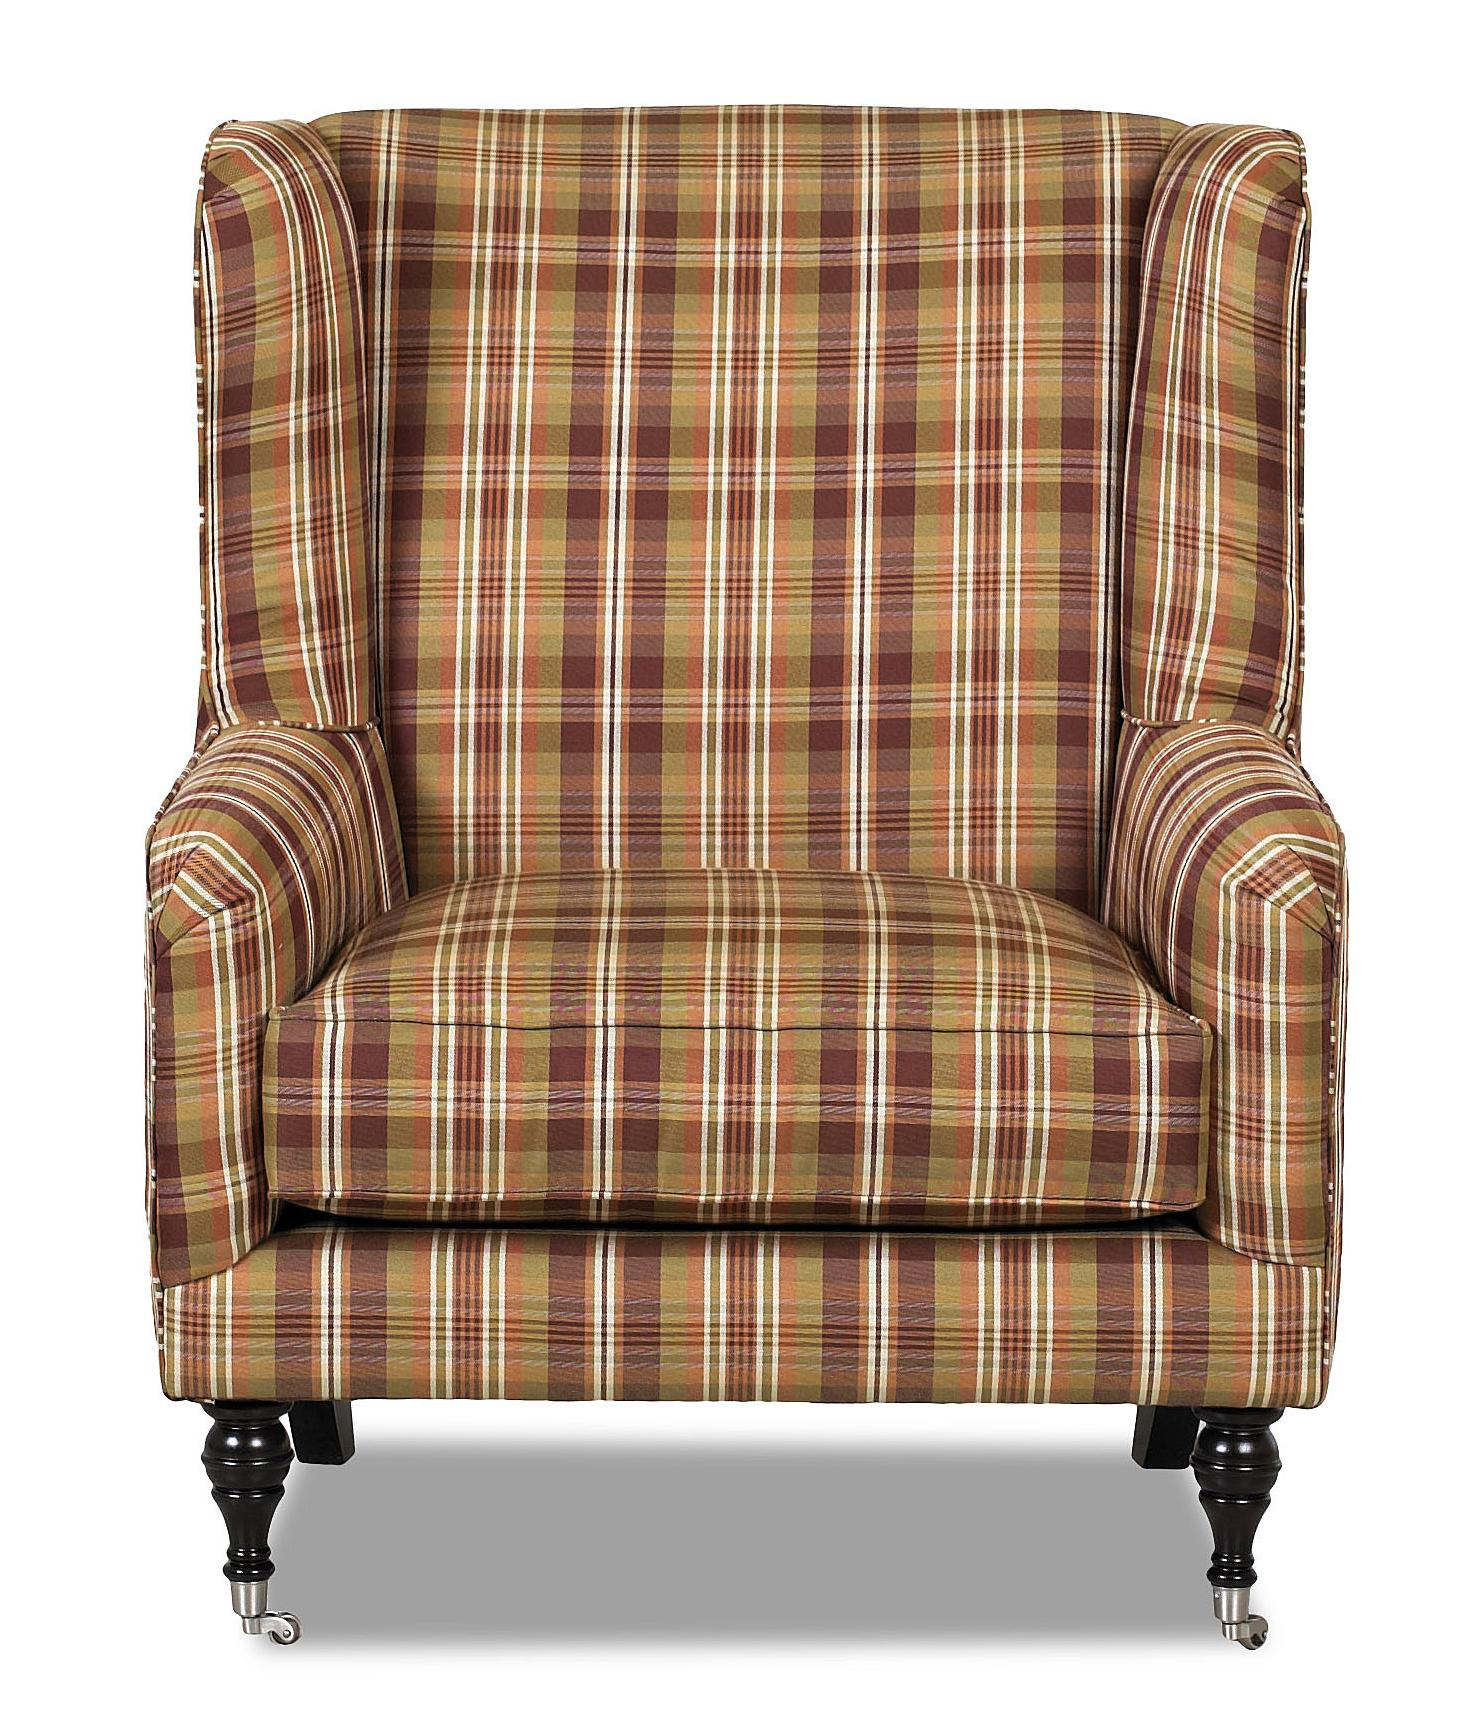 Klaussner Chairs and Accents Edenton Accent Chair - Item Number: D45700 OC